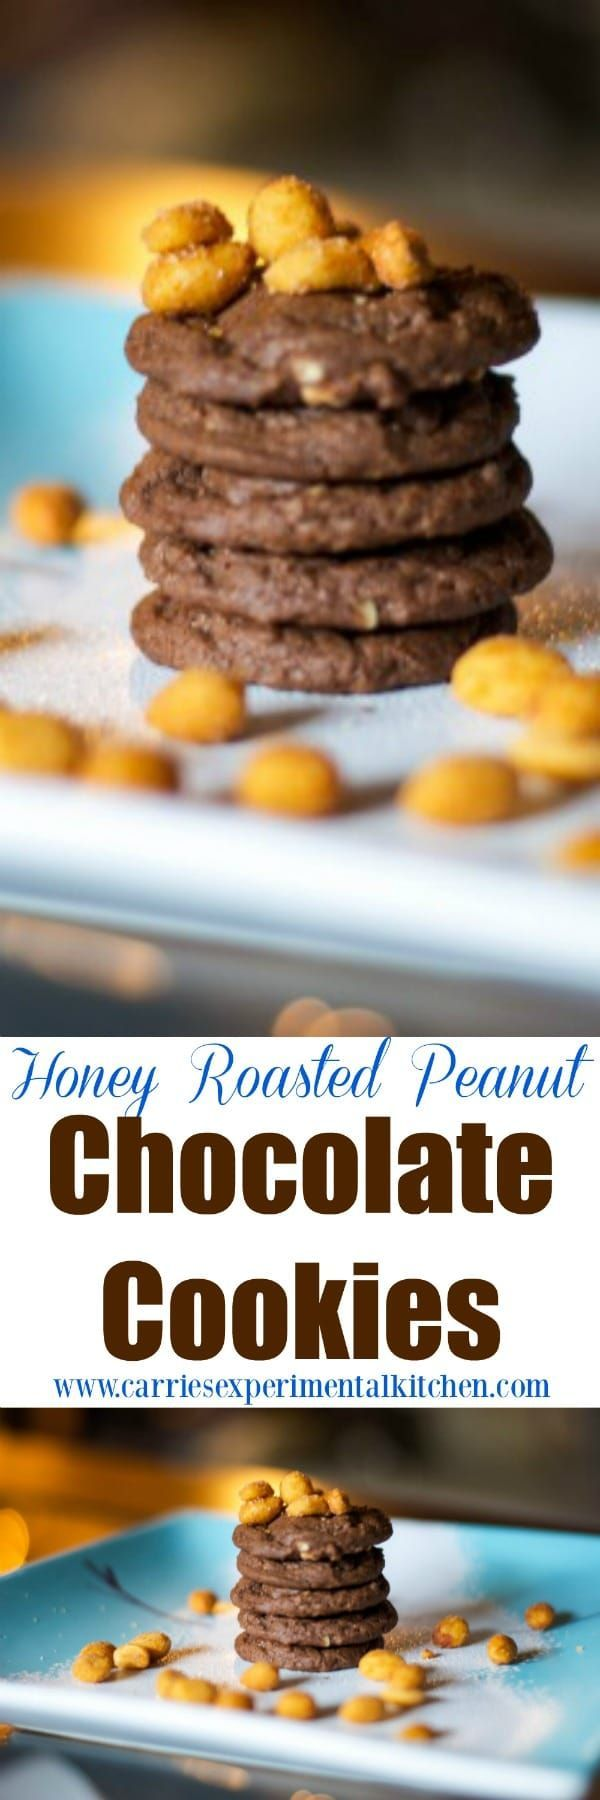 Are you looking for a sweet, salty, chocolatey snack? Try these Honey Roasted Peanut Chocolate Cookies. You won't be disappointed. #cookies #chocolate #peanuts